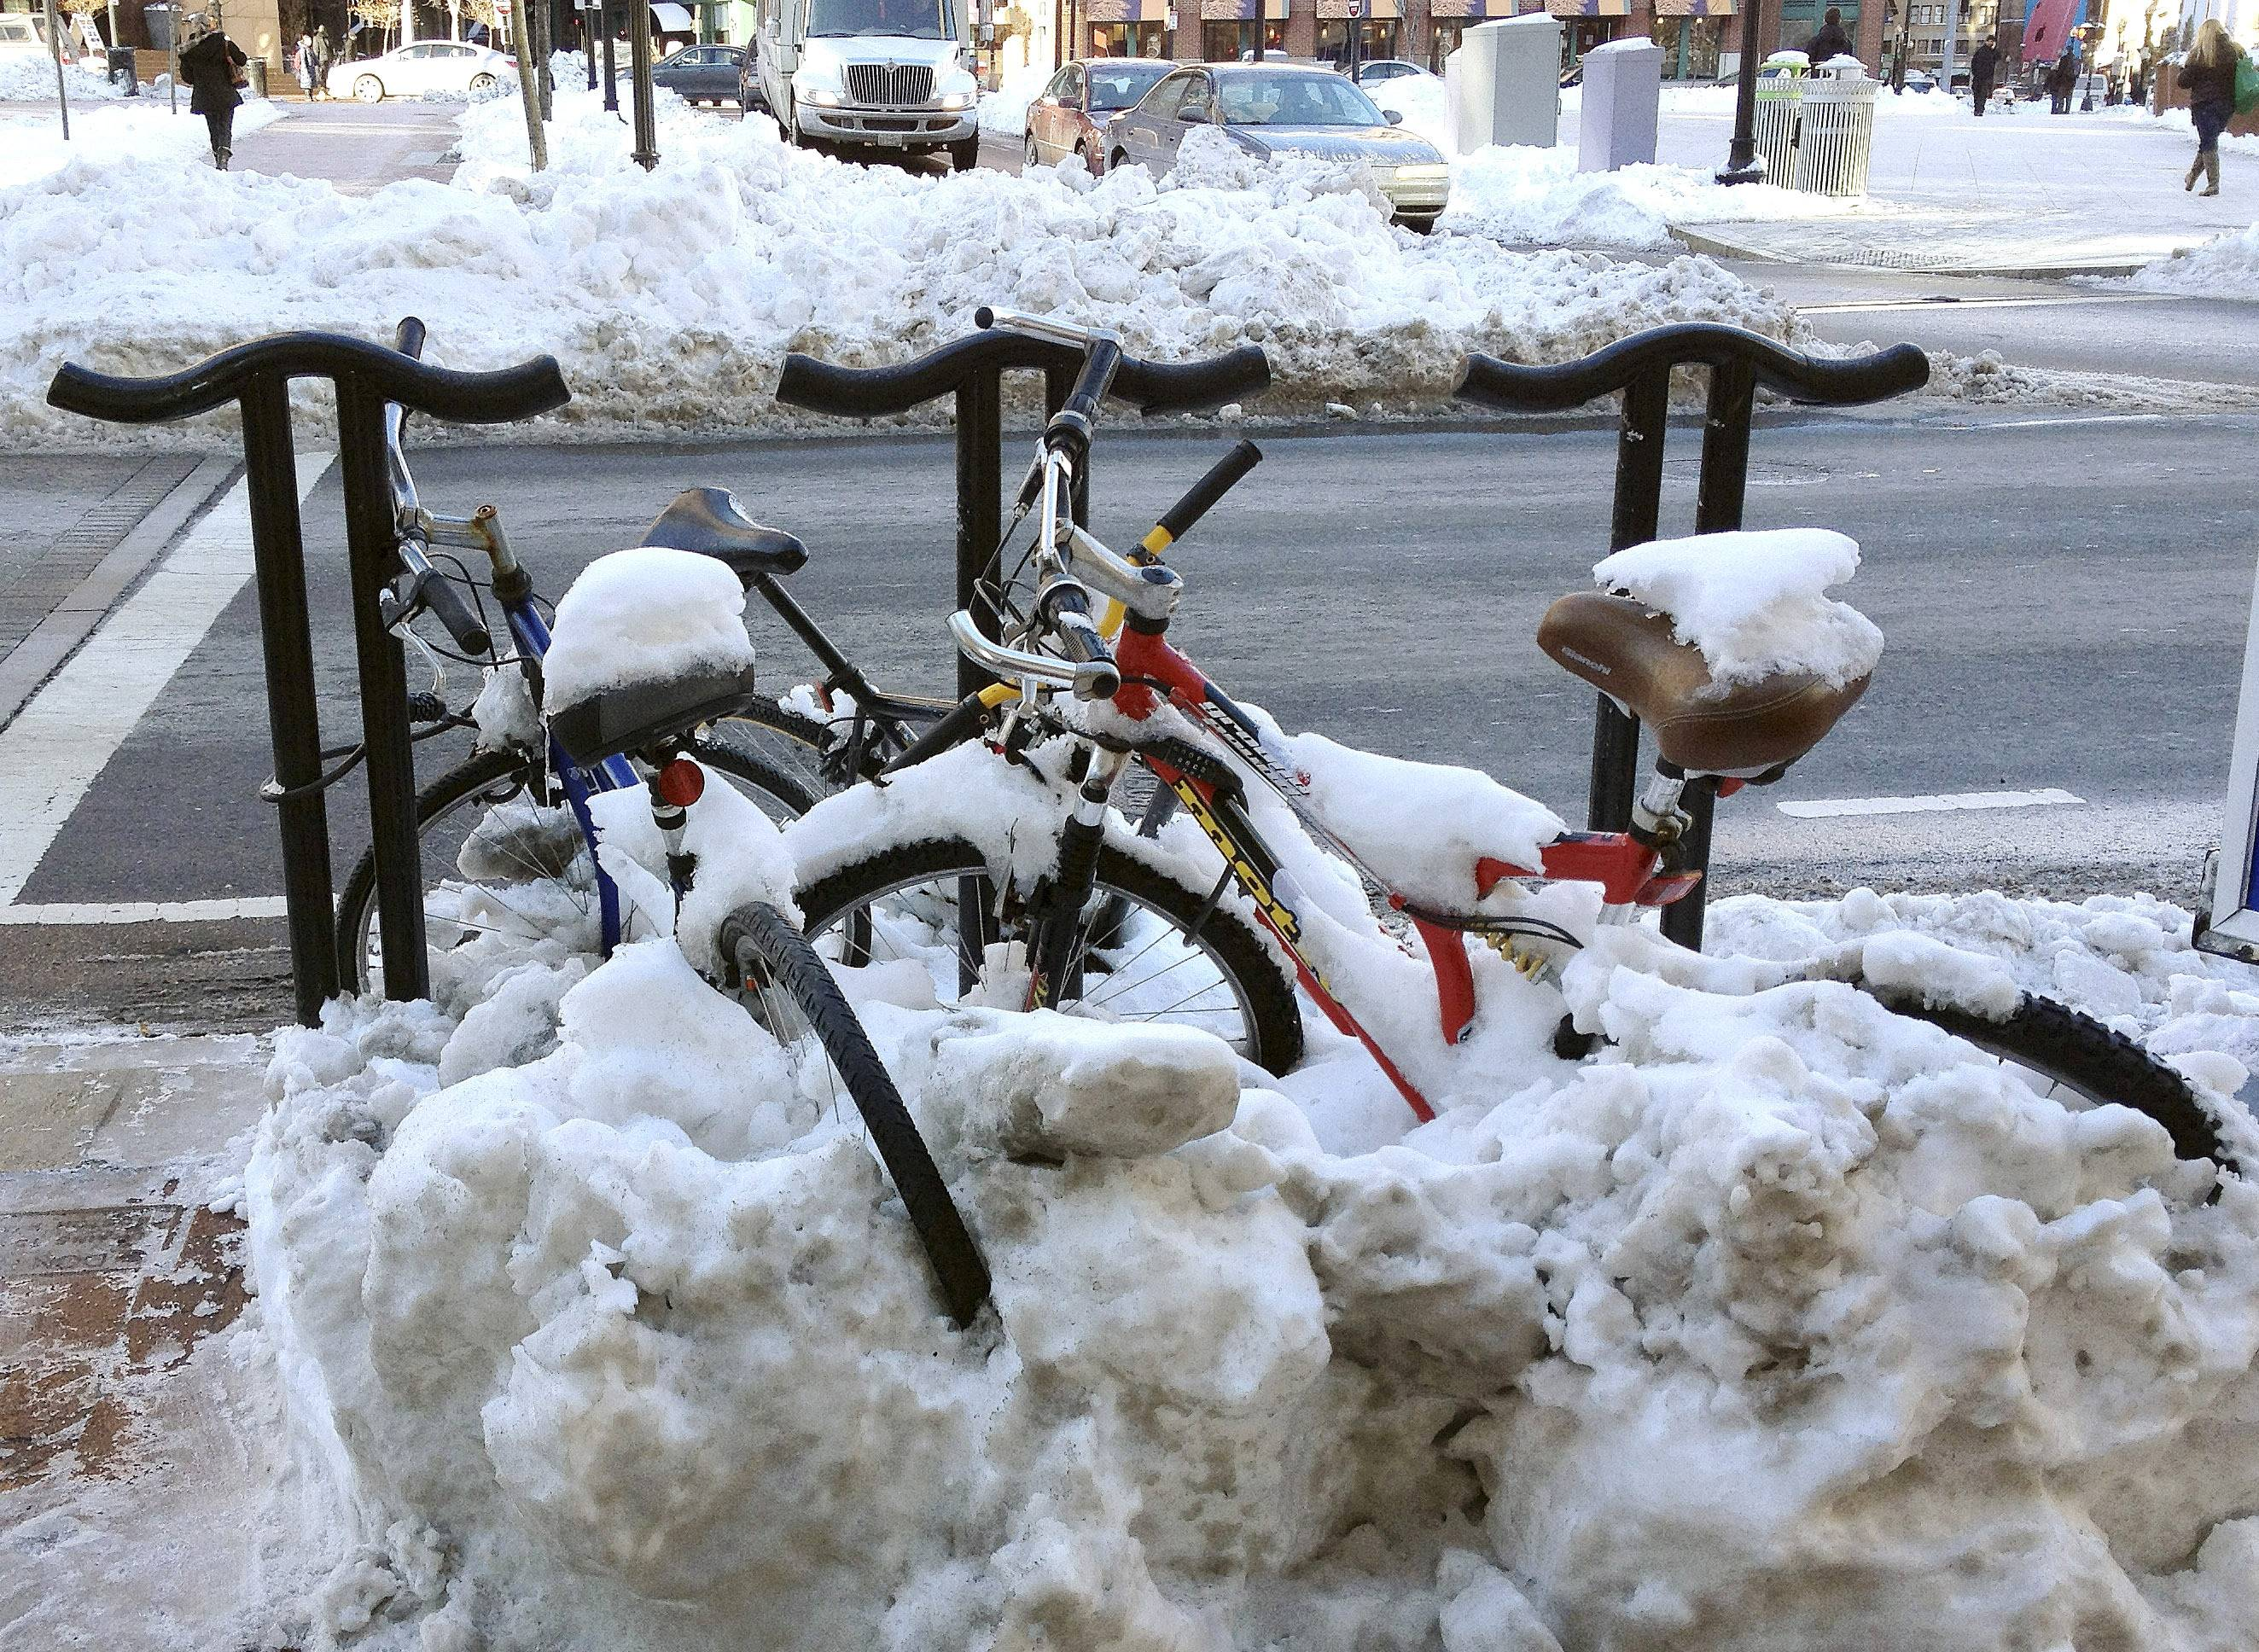 Bicycles remained covered with snow in downtown Boston, Friday, Feb. 7, 2014, after a Wednesday storm dropped more than 10 inches of snow on the city, according to the National Weather Service.